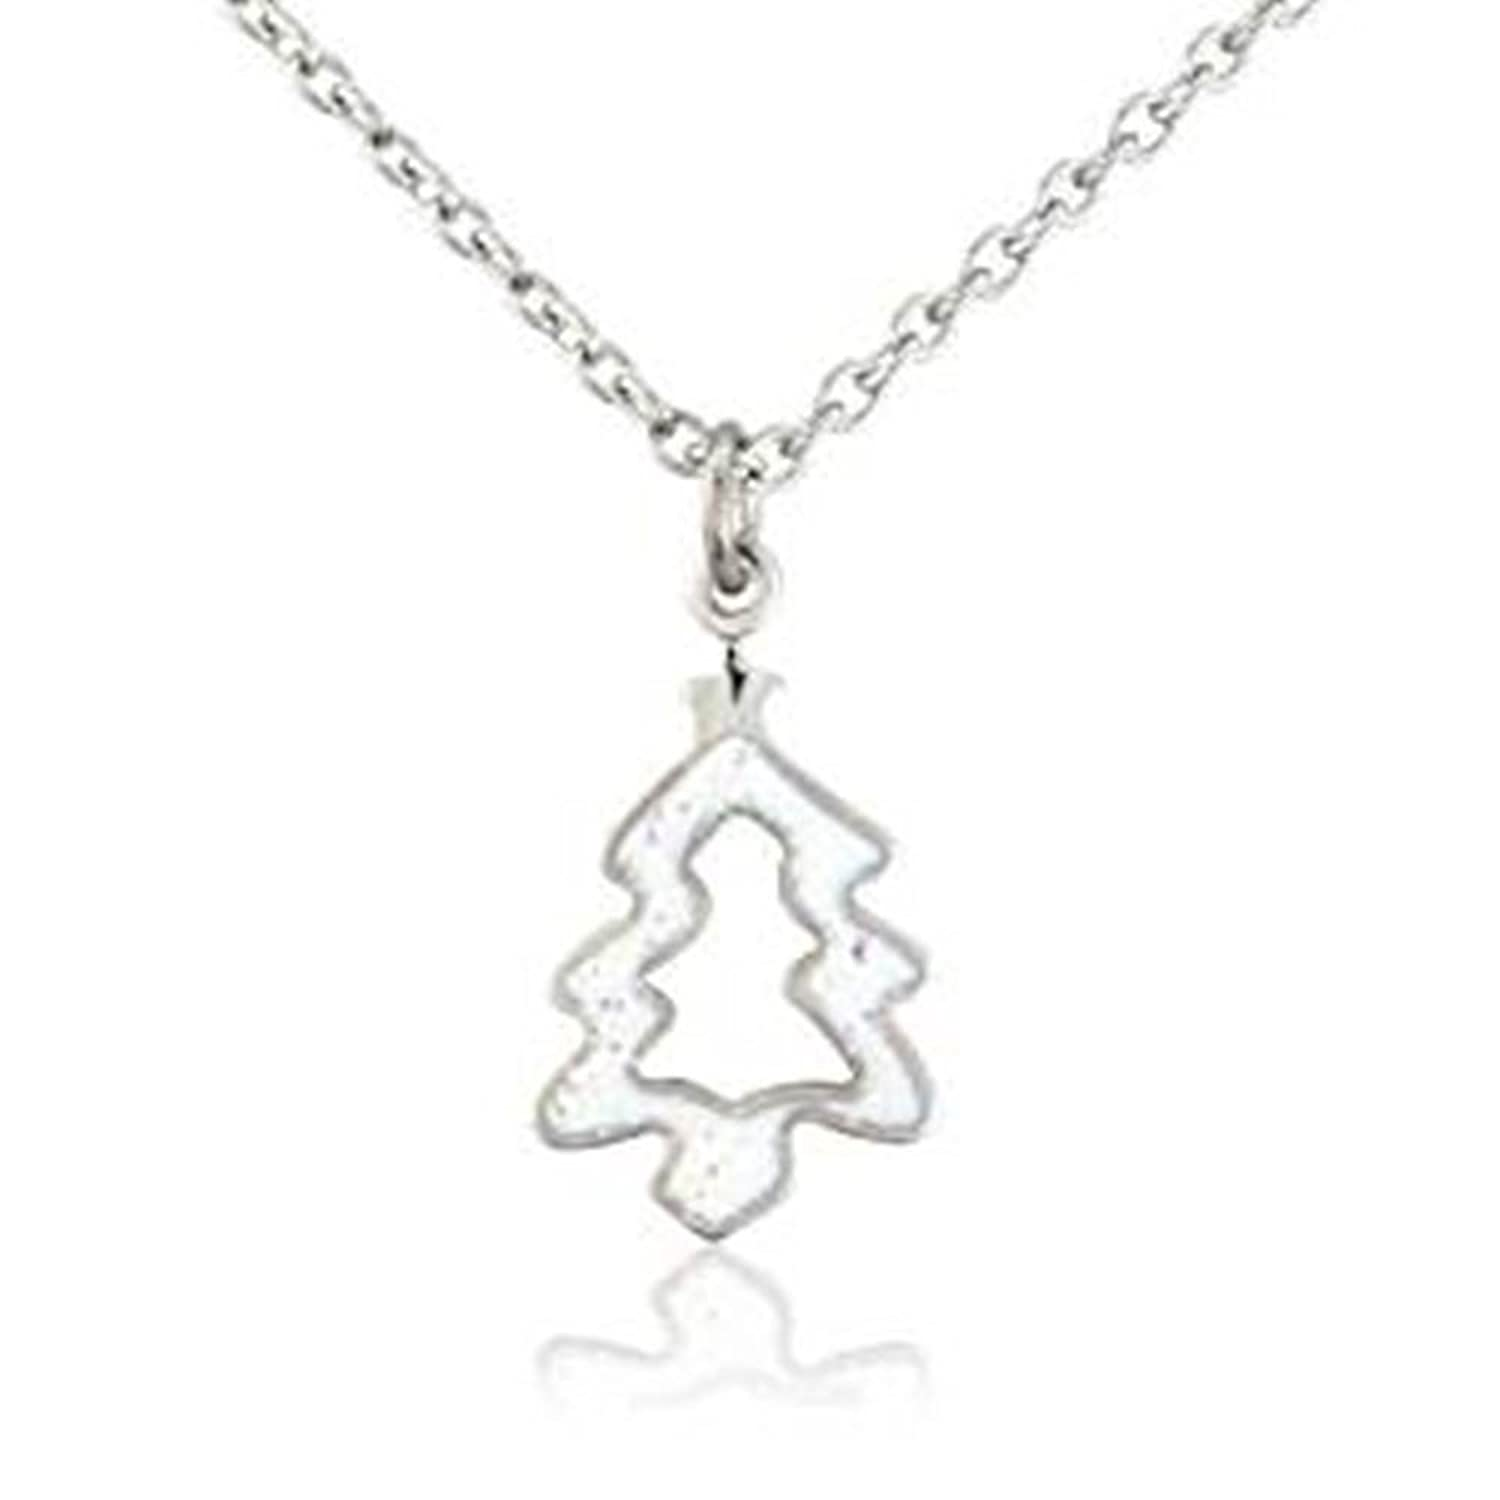 de costume crystal clear neige lalique long fleur necklaces and silver jewellery necklace catalog en